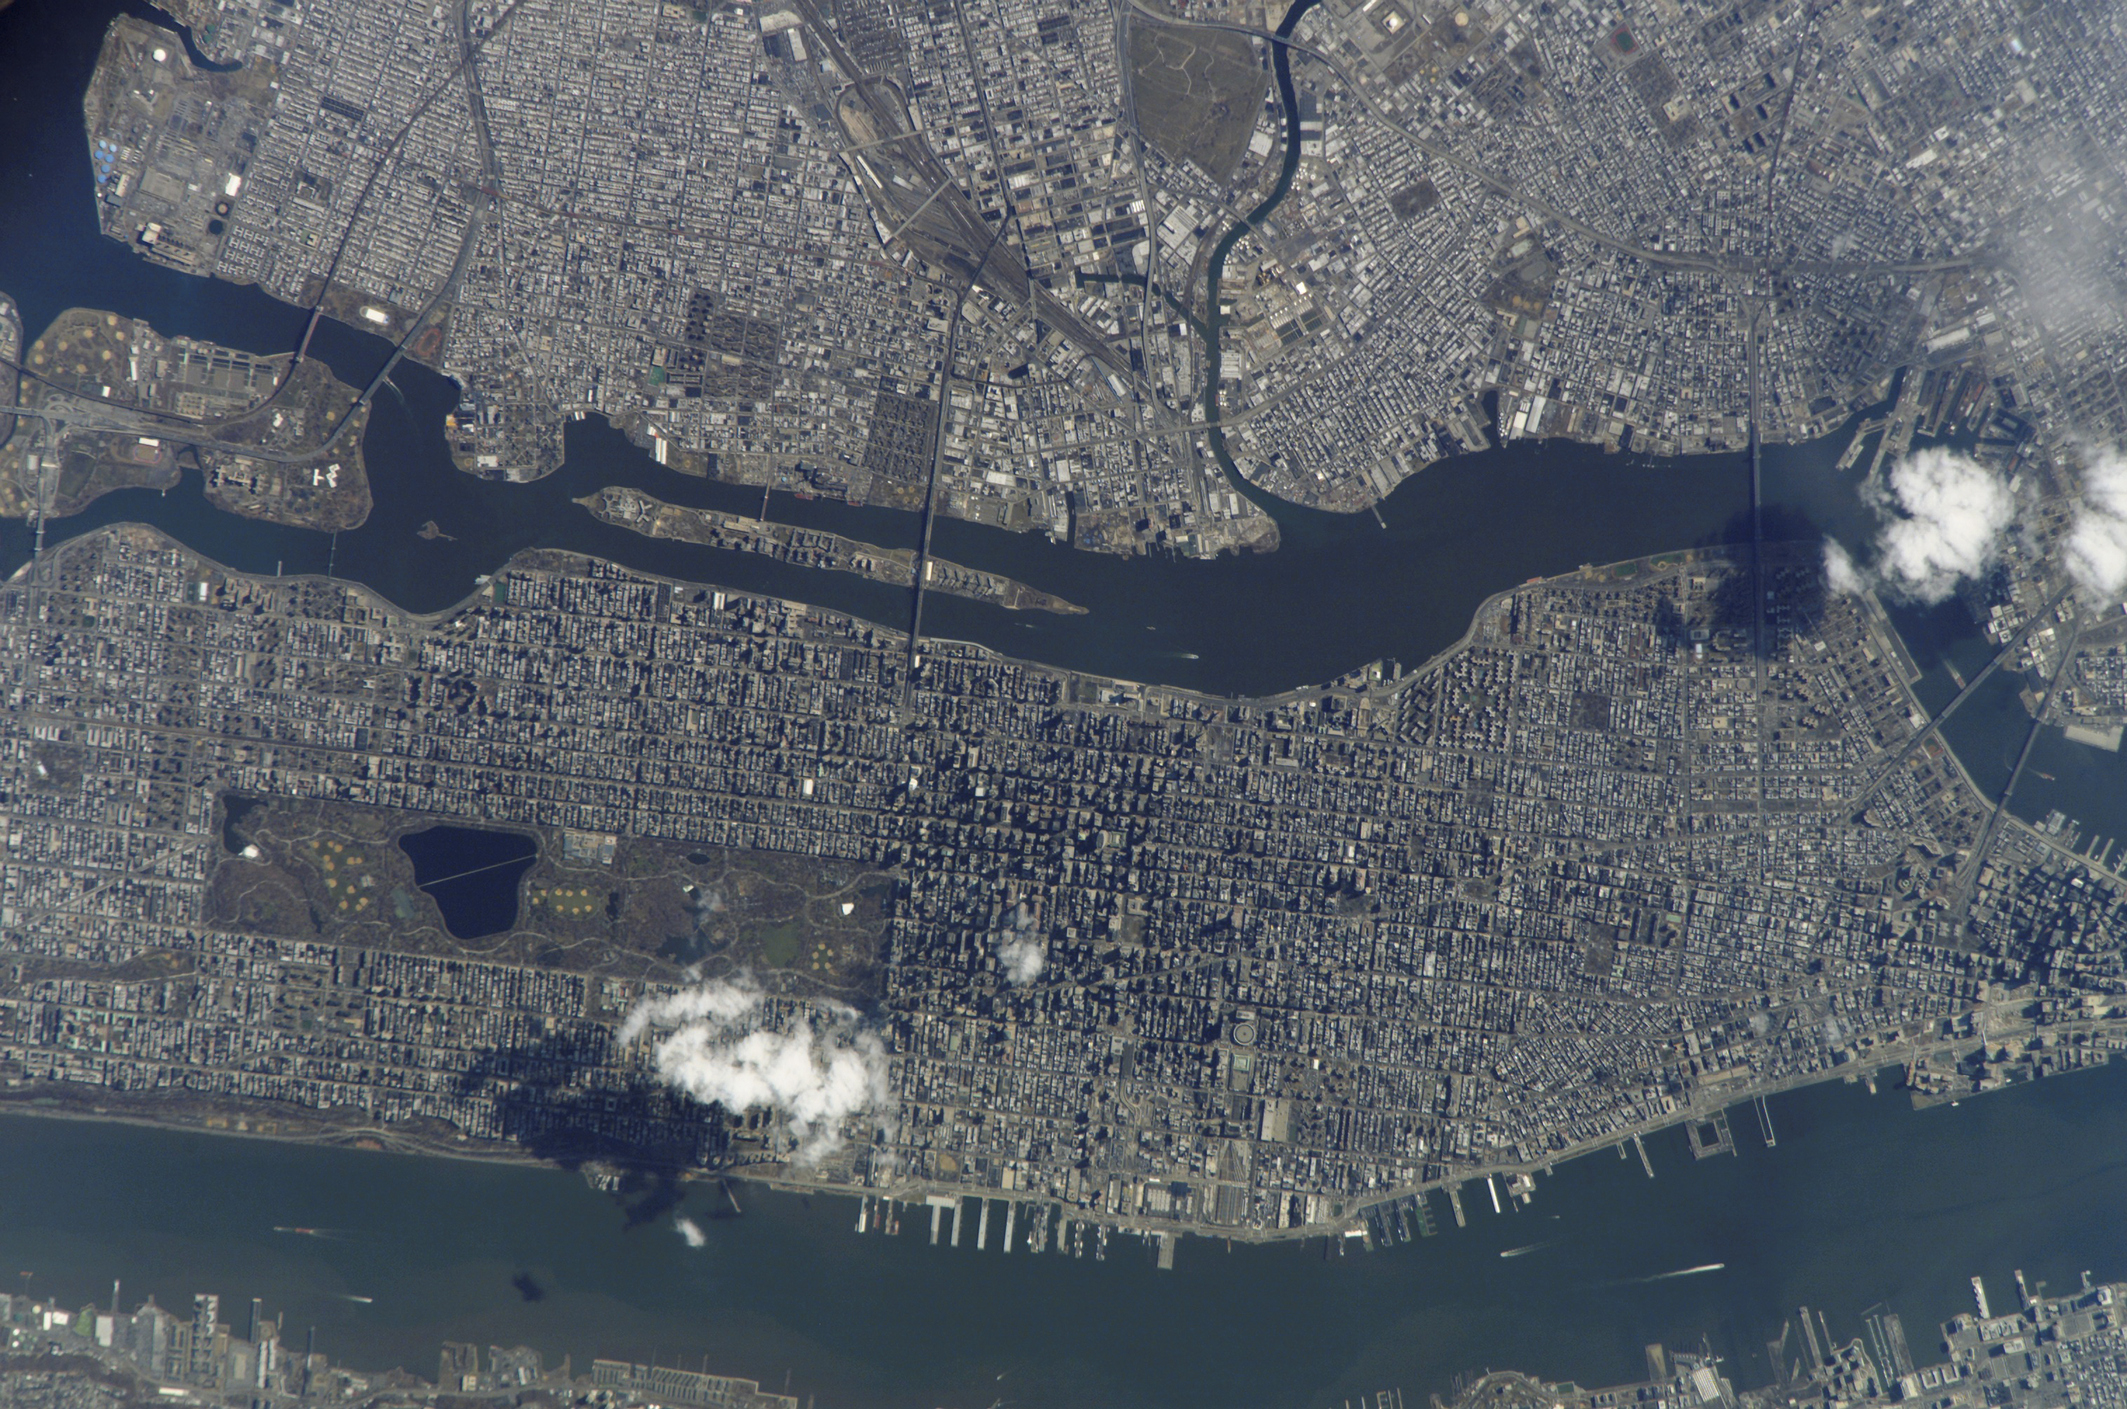 manhattan-island-and-its-easily-recognizable-central-parkjpg